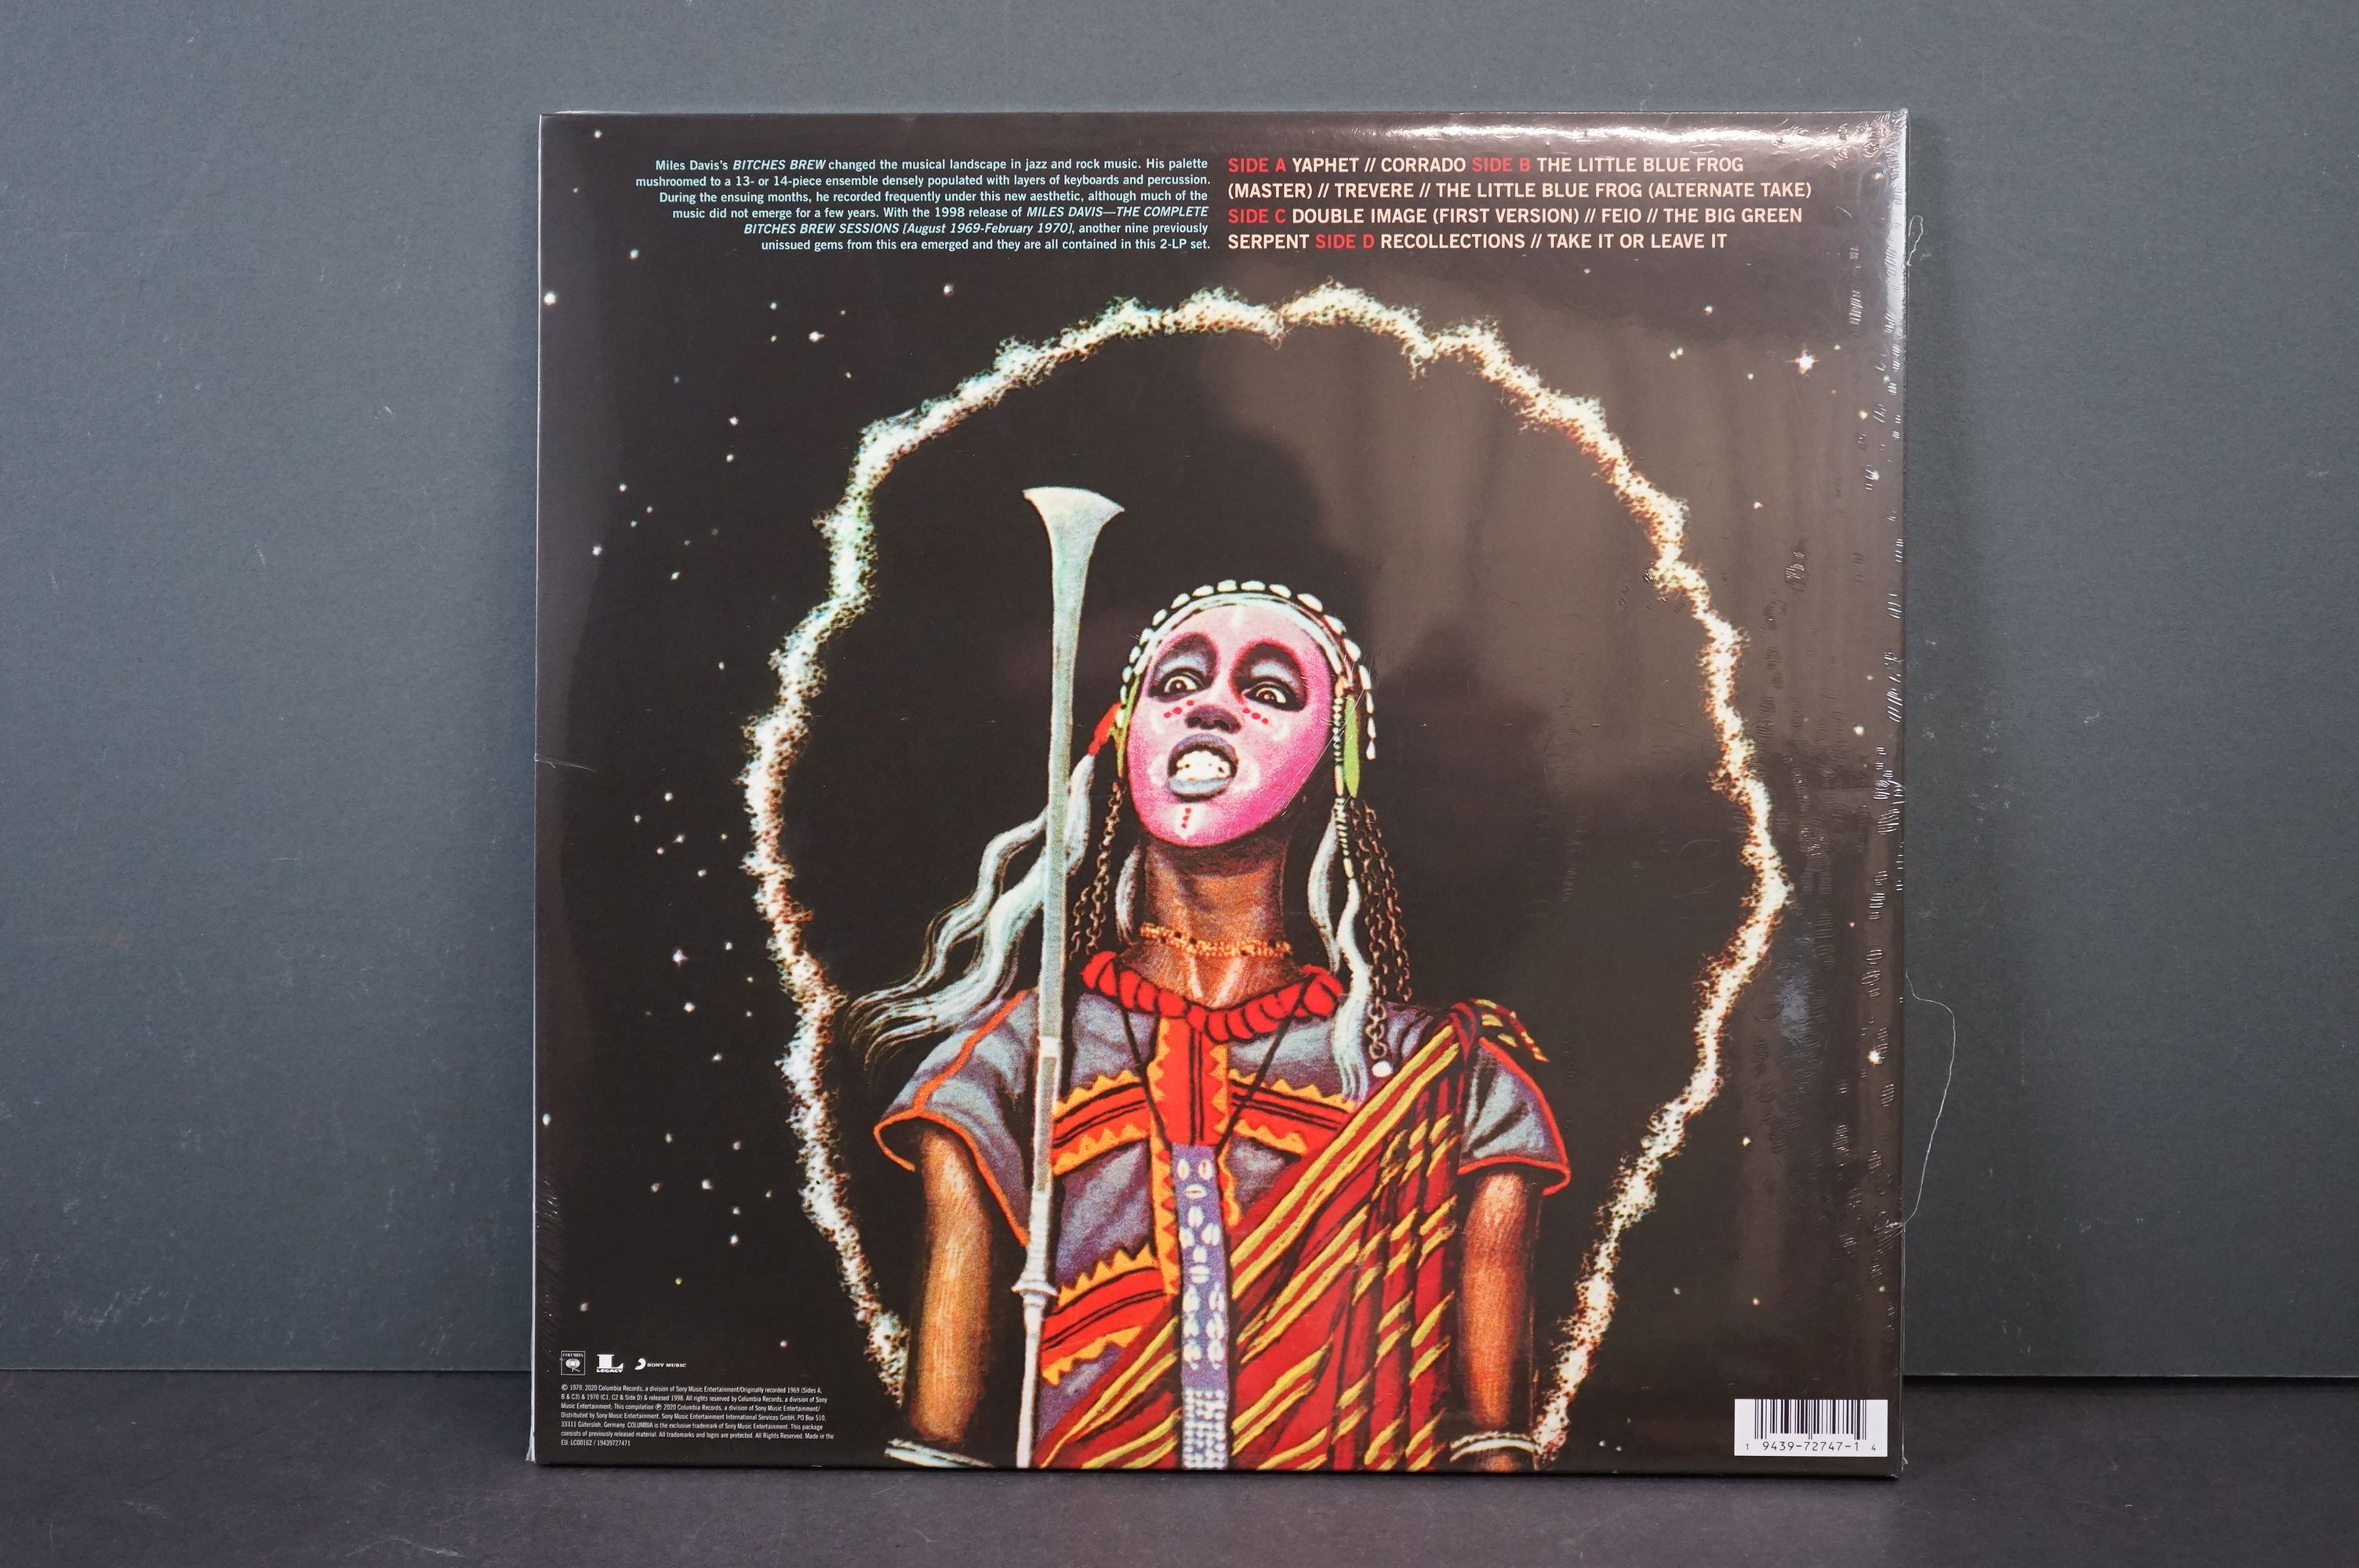 Vinyl - Miles Davis Double Image from the Bitches Brew Sessions RSD LP, sealed - Image 2 of 2